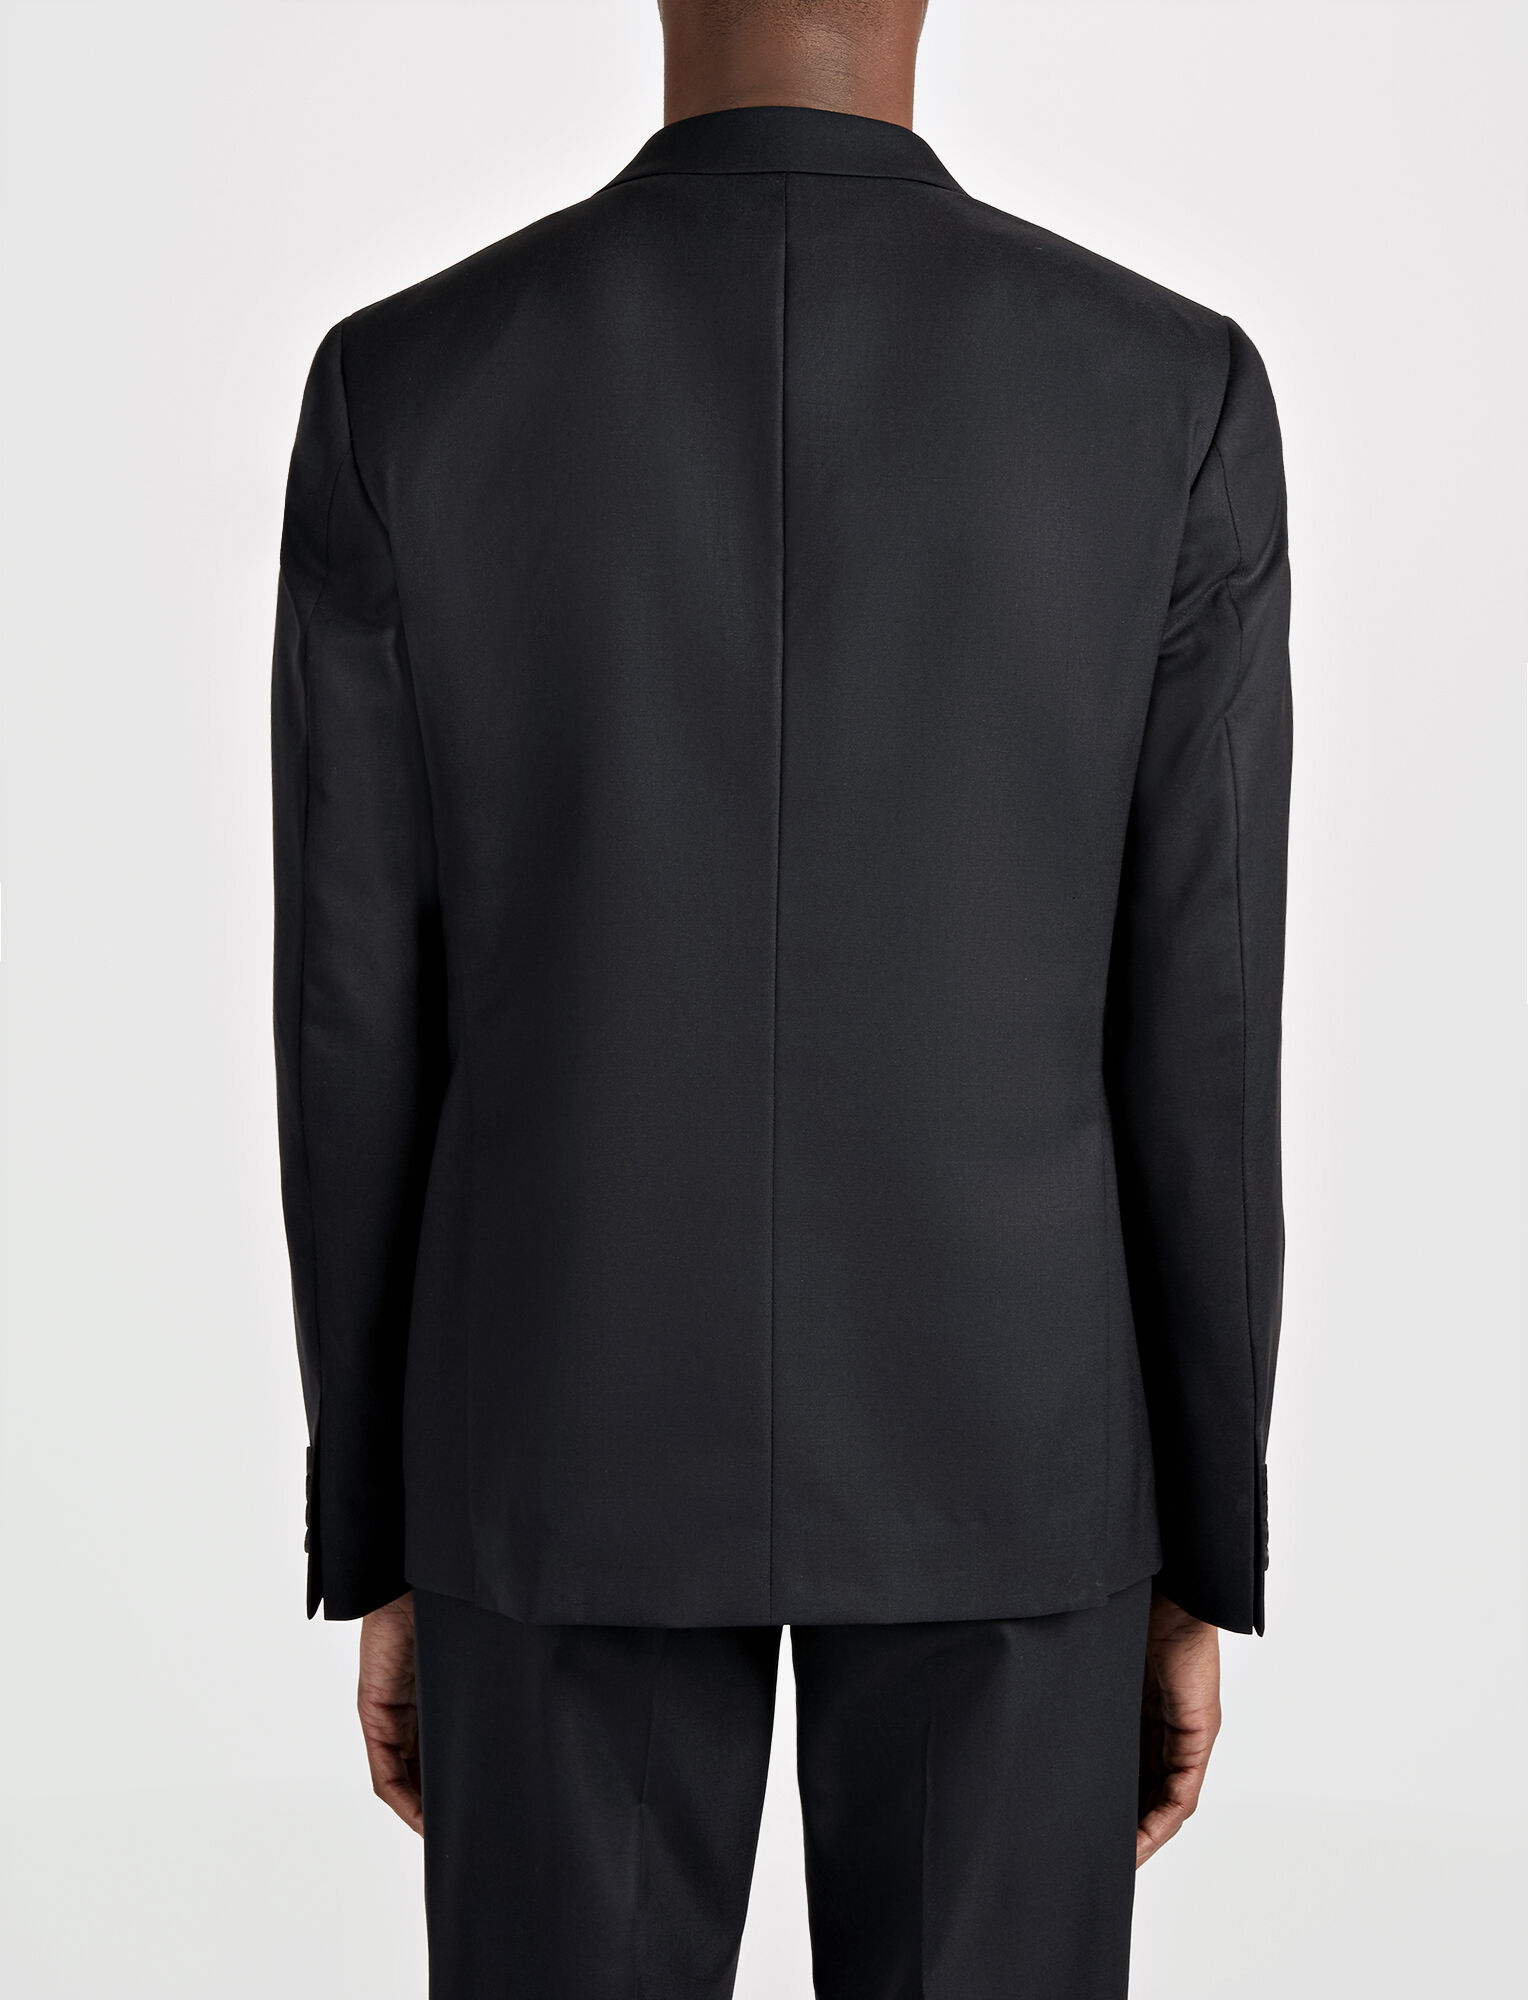 Joseph, Tropical Wool Davide Suit Jacket, in BLACK